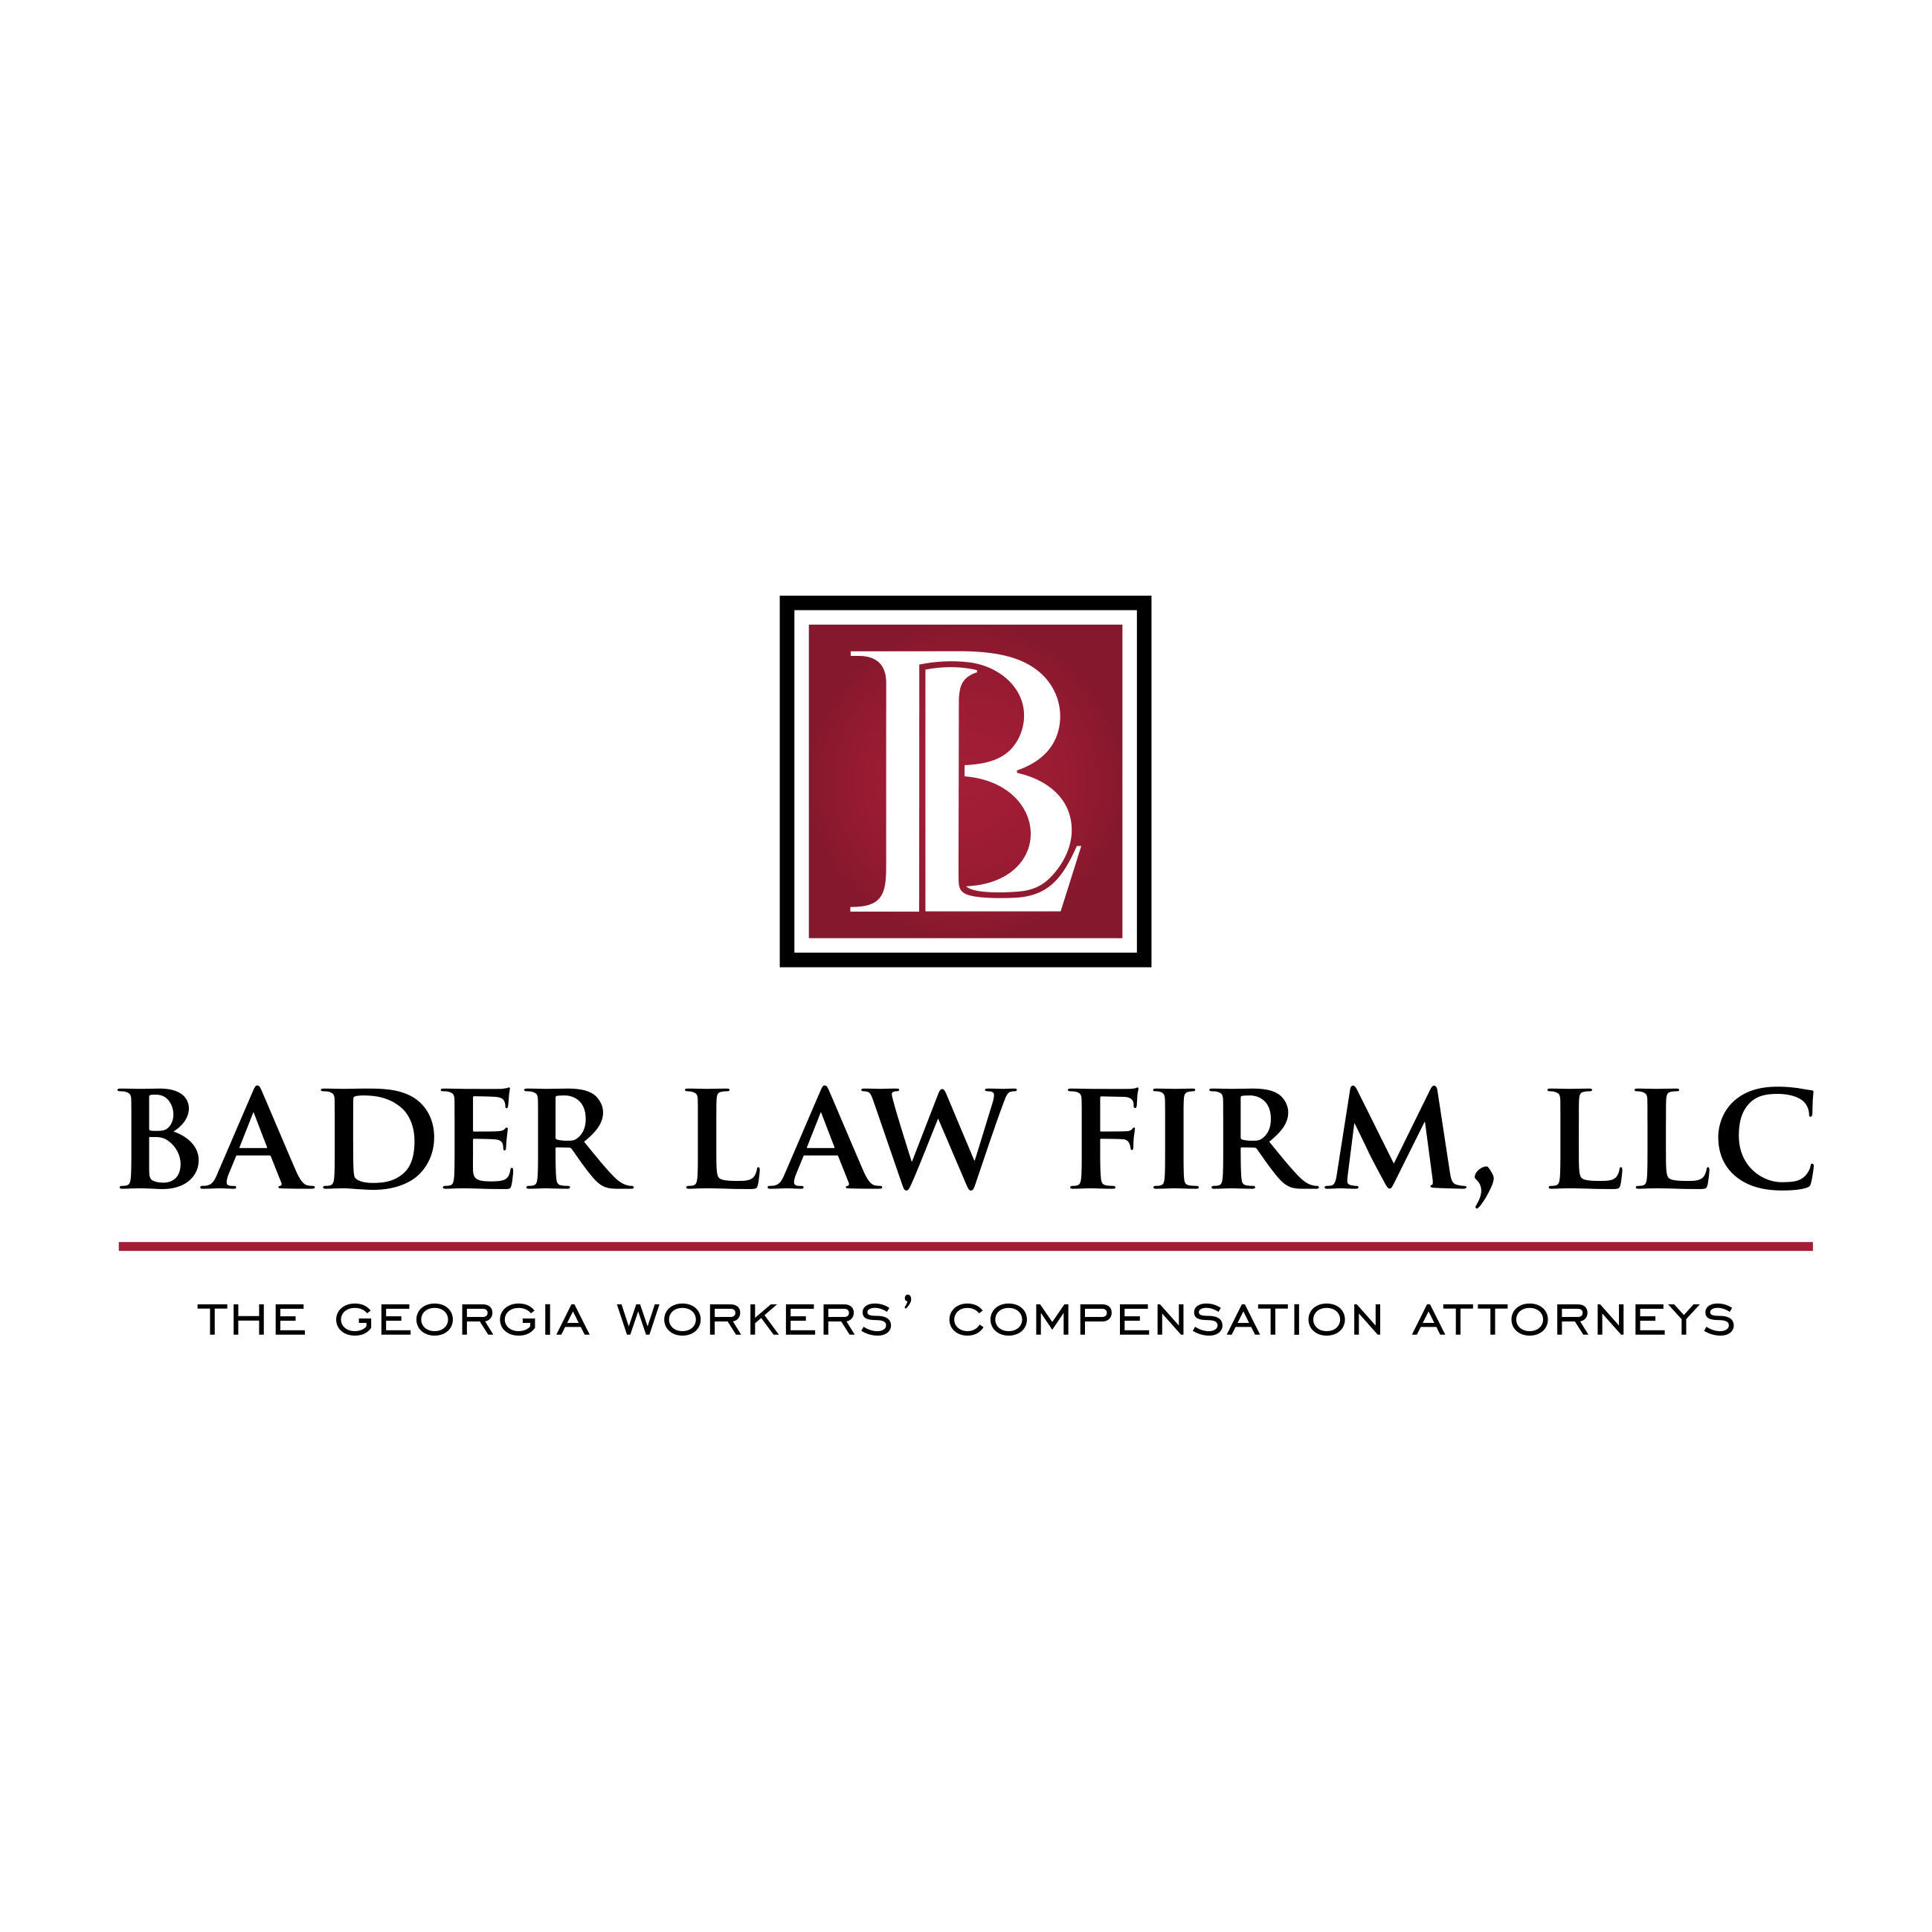 Bader Law Firm, LLC